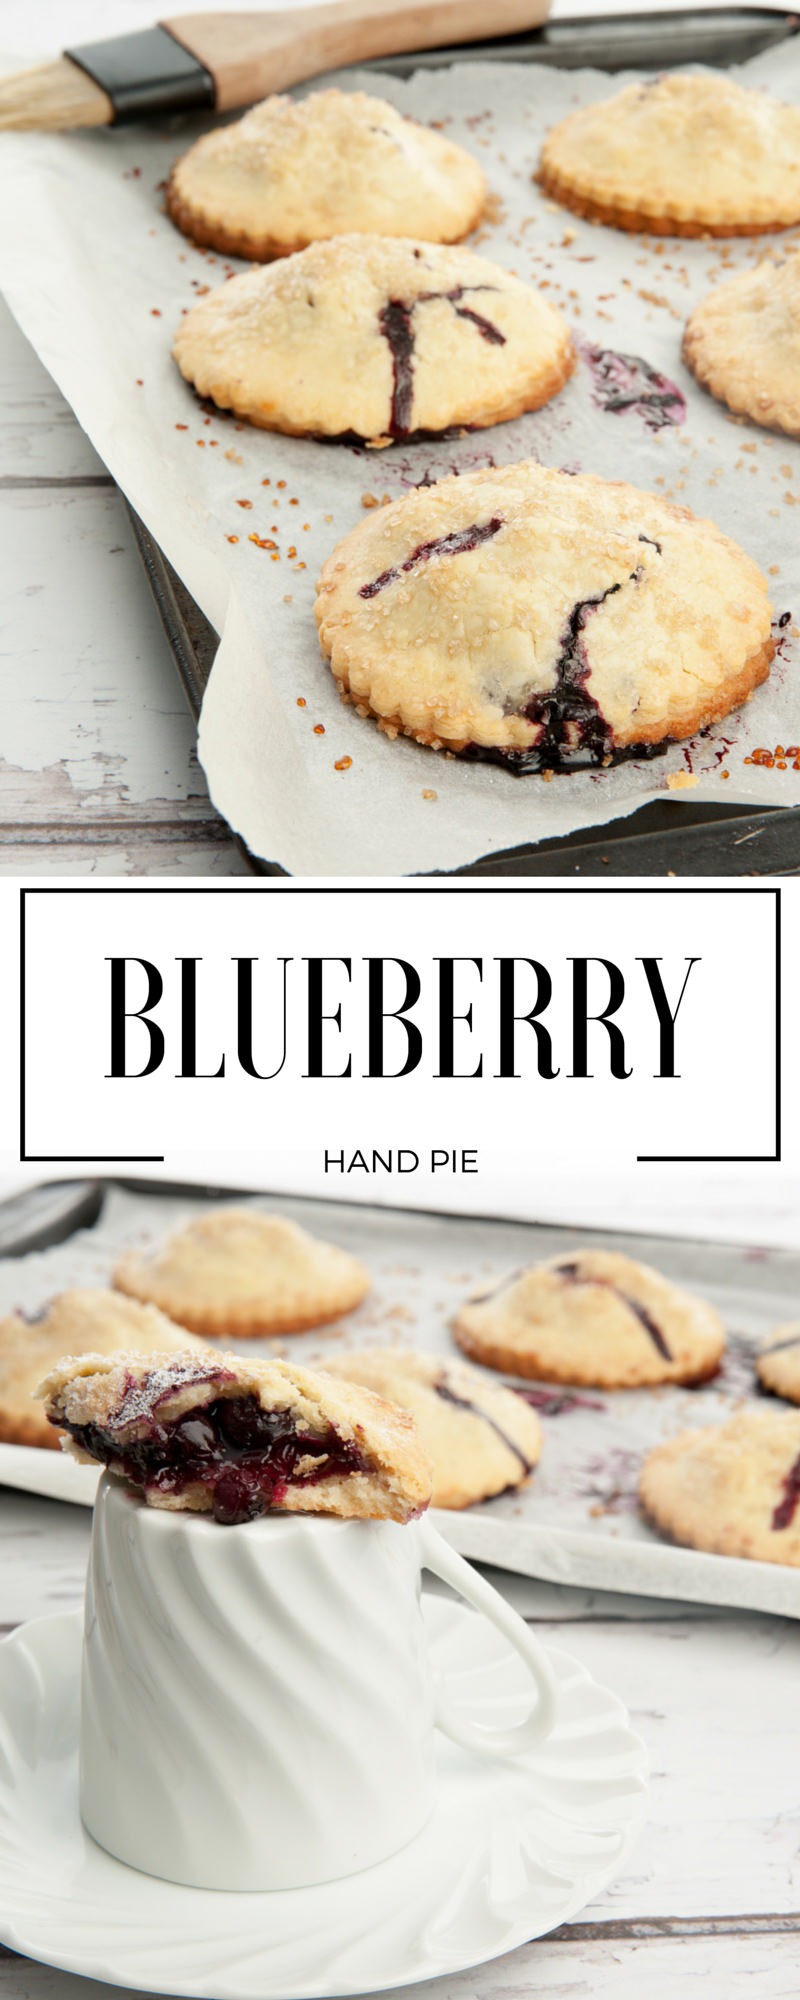 BLUEBERRY Hand Pie Pin